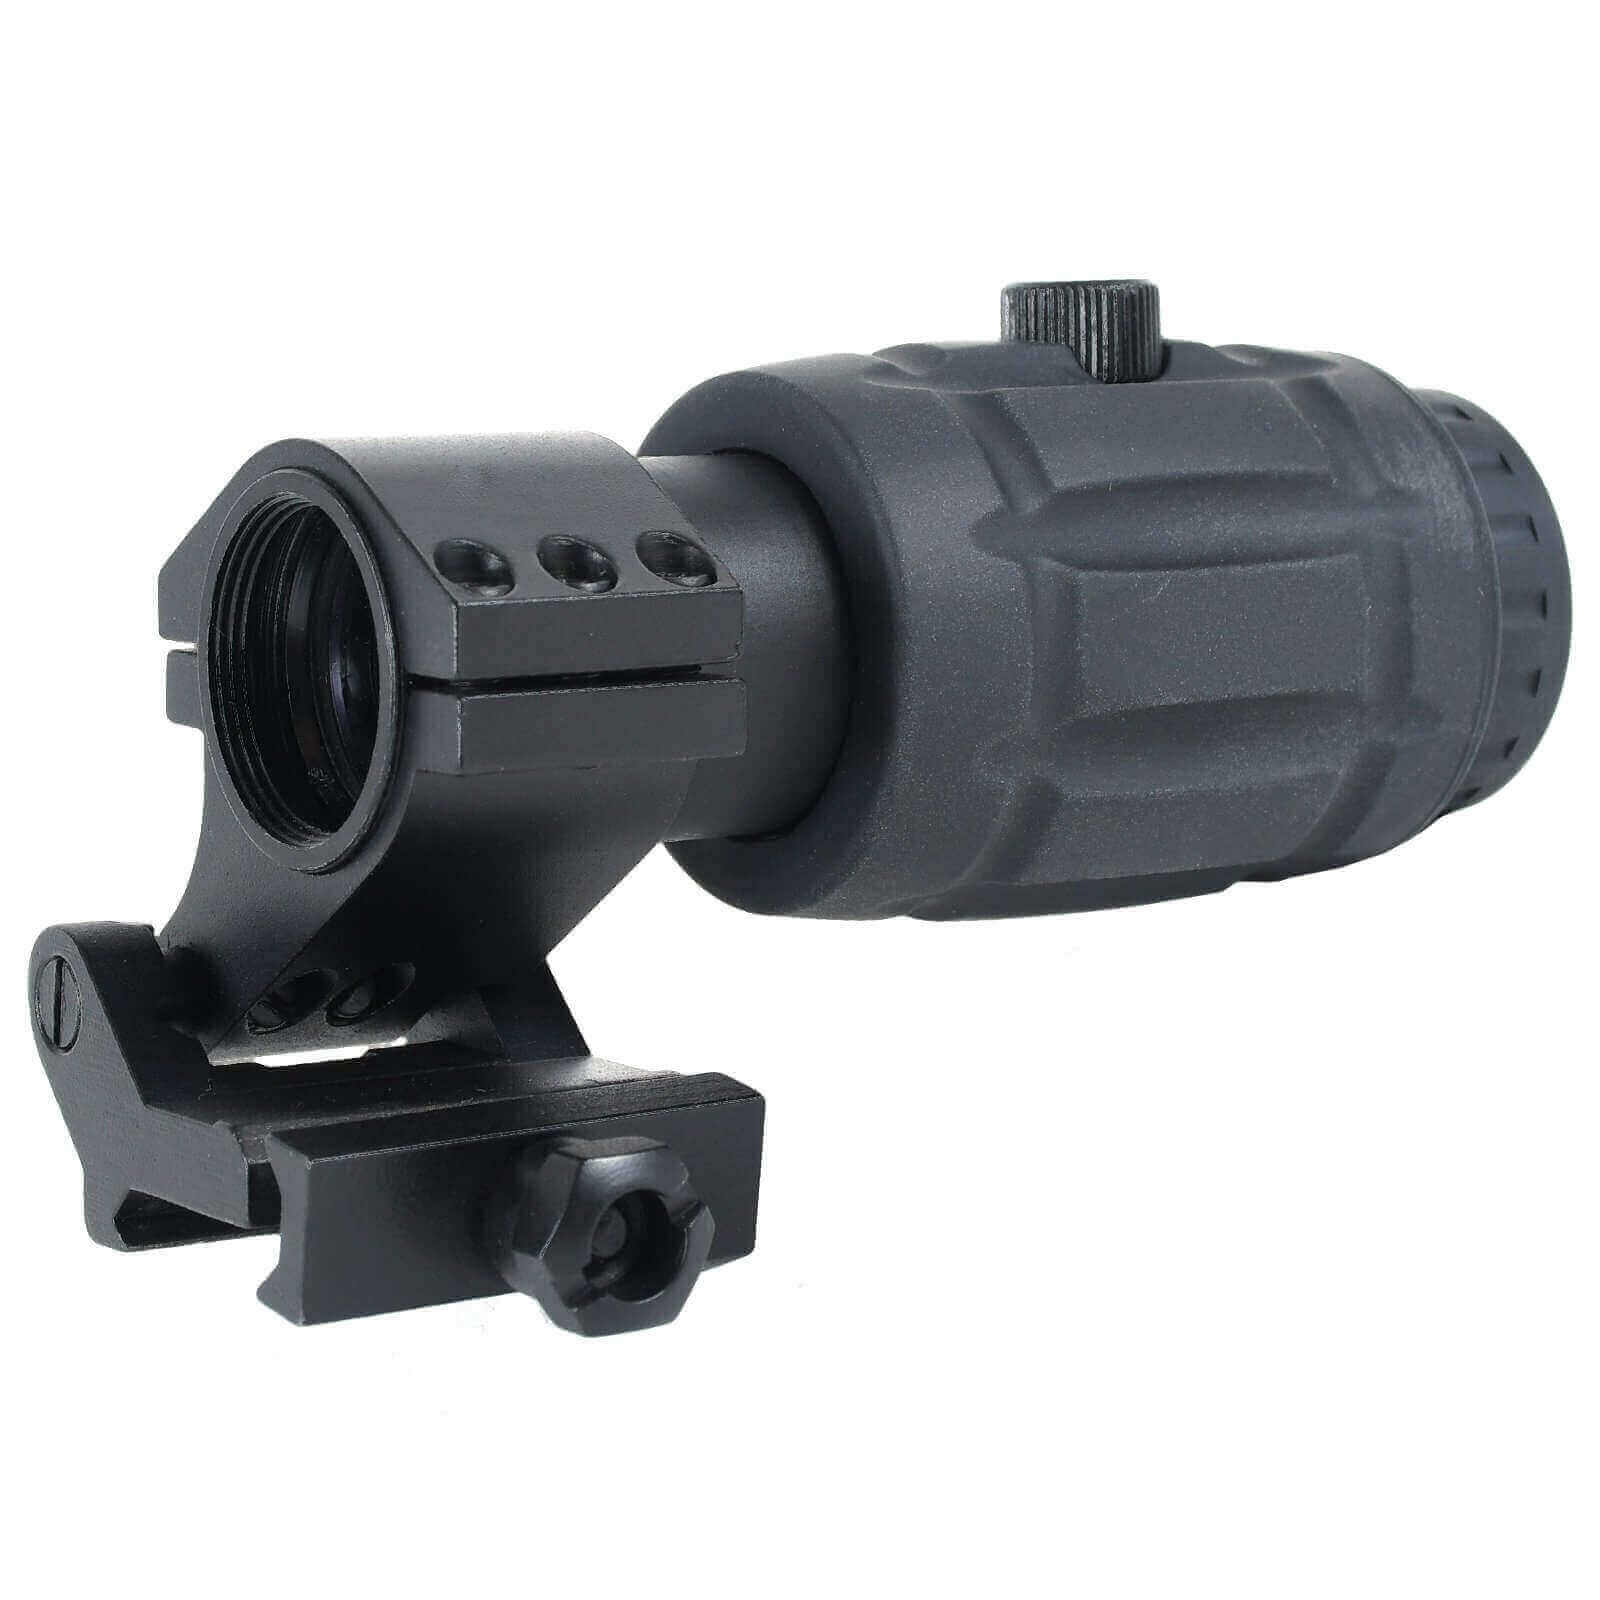 AT3™ RRDM™ 3X Red Dot Magnifier with Flip-to-Side Mount